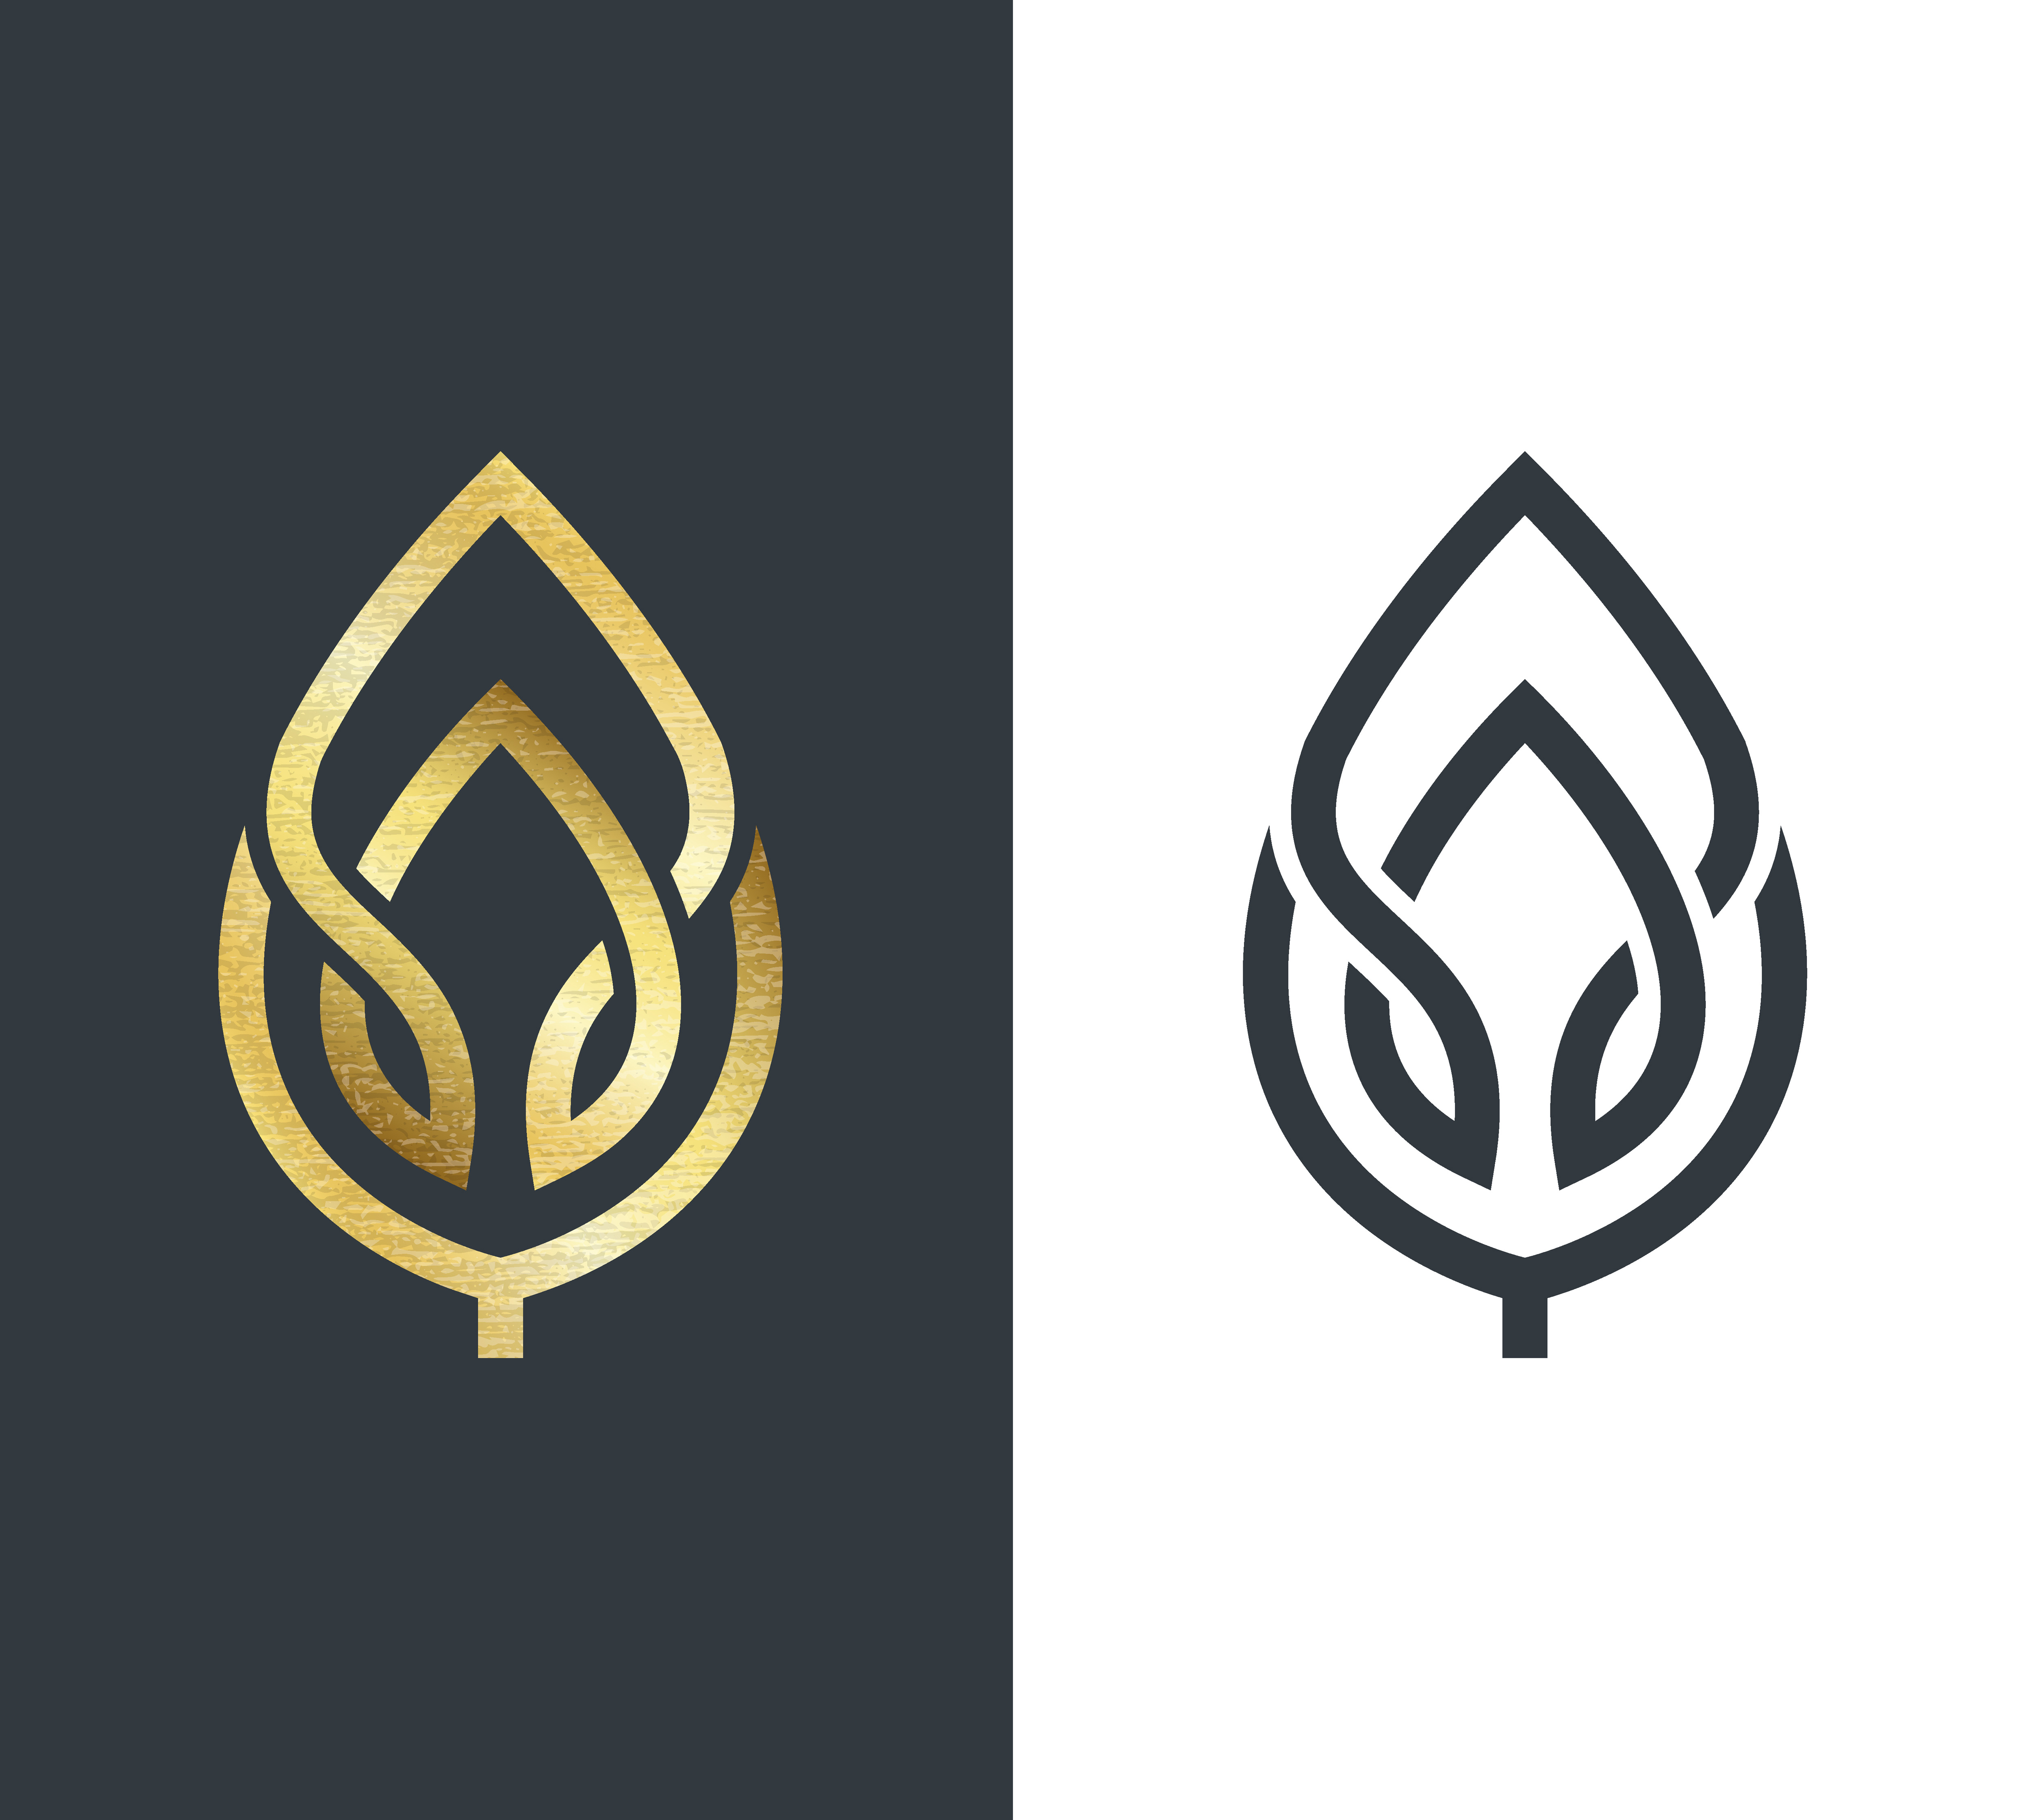 Black and gold Logos